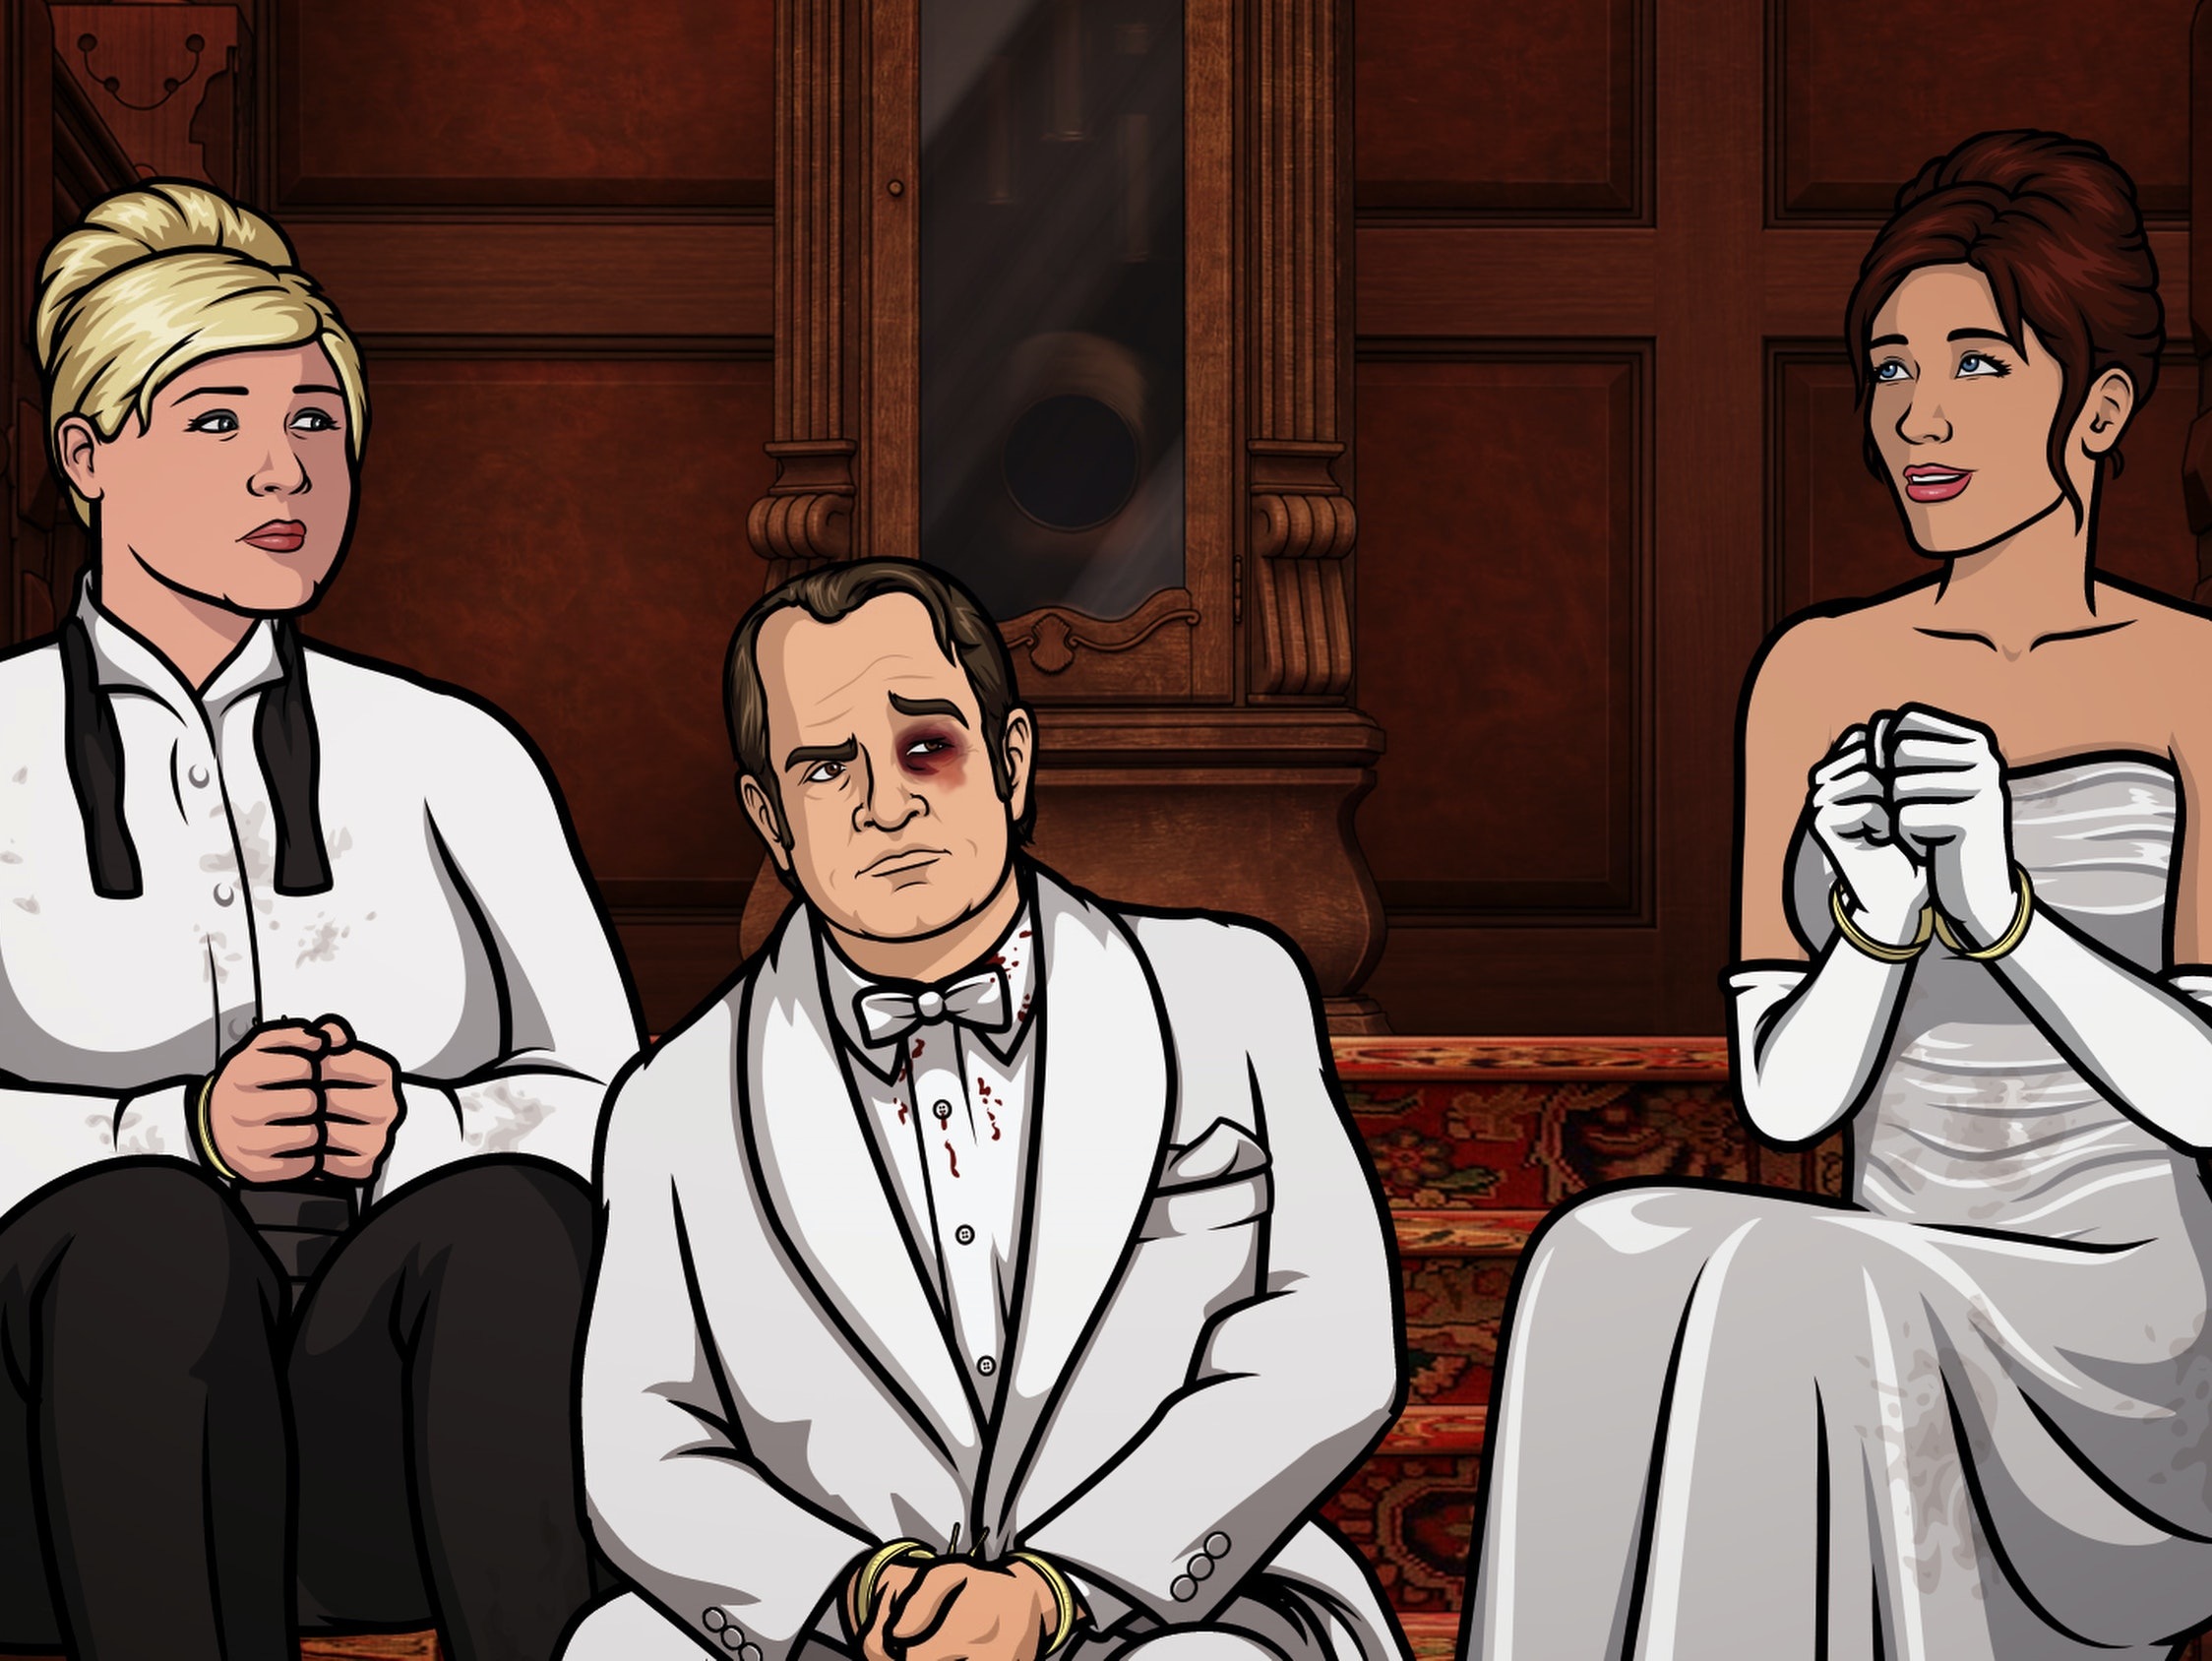 The 'Archer' Hostage Crisis Devolves Into Farce